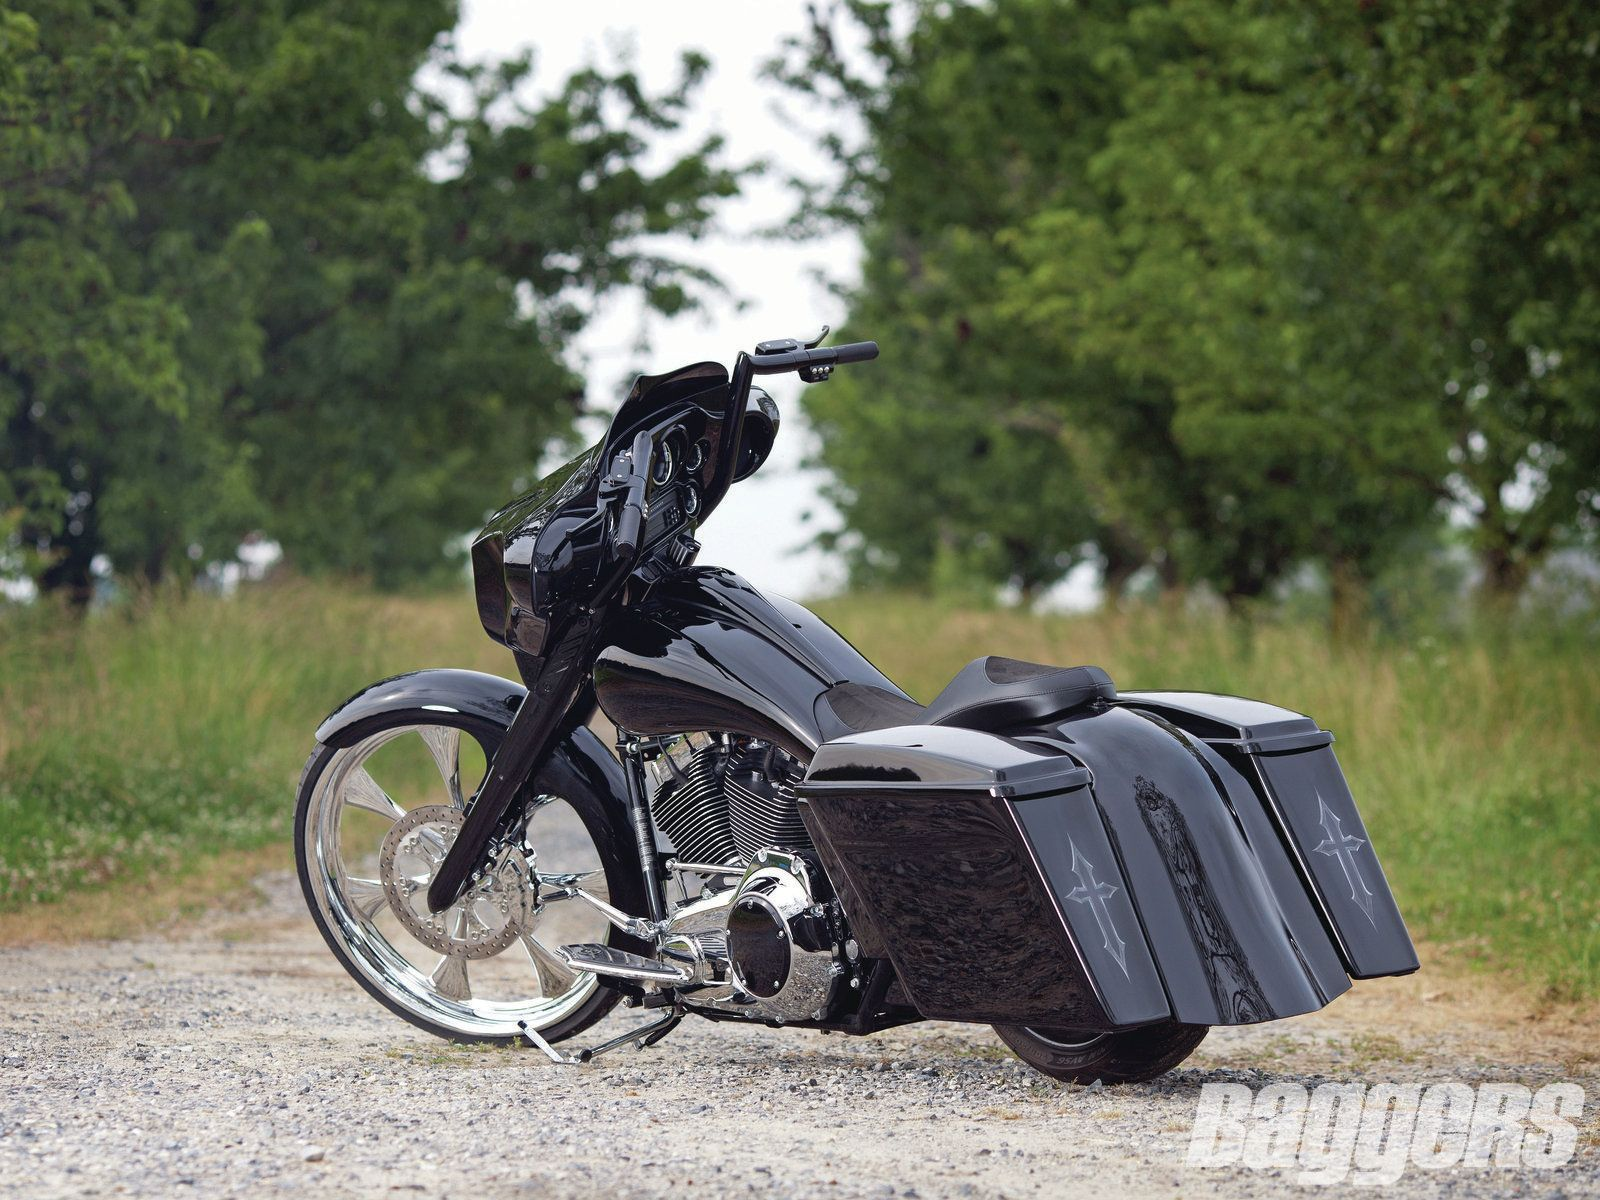 2009 Harley Davidson Street Glide Parked Rear Left View Photo 3